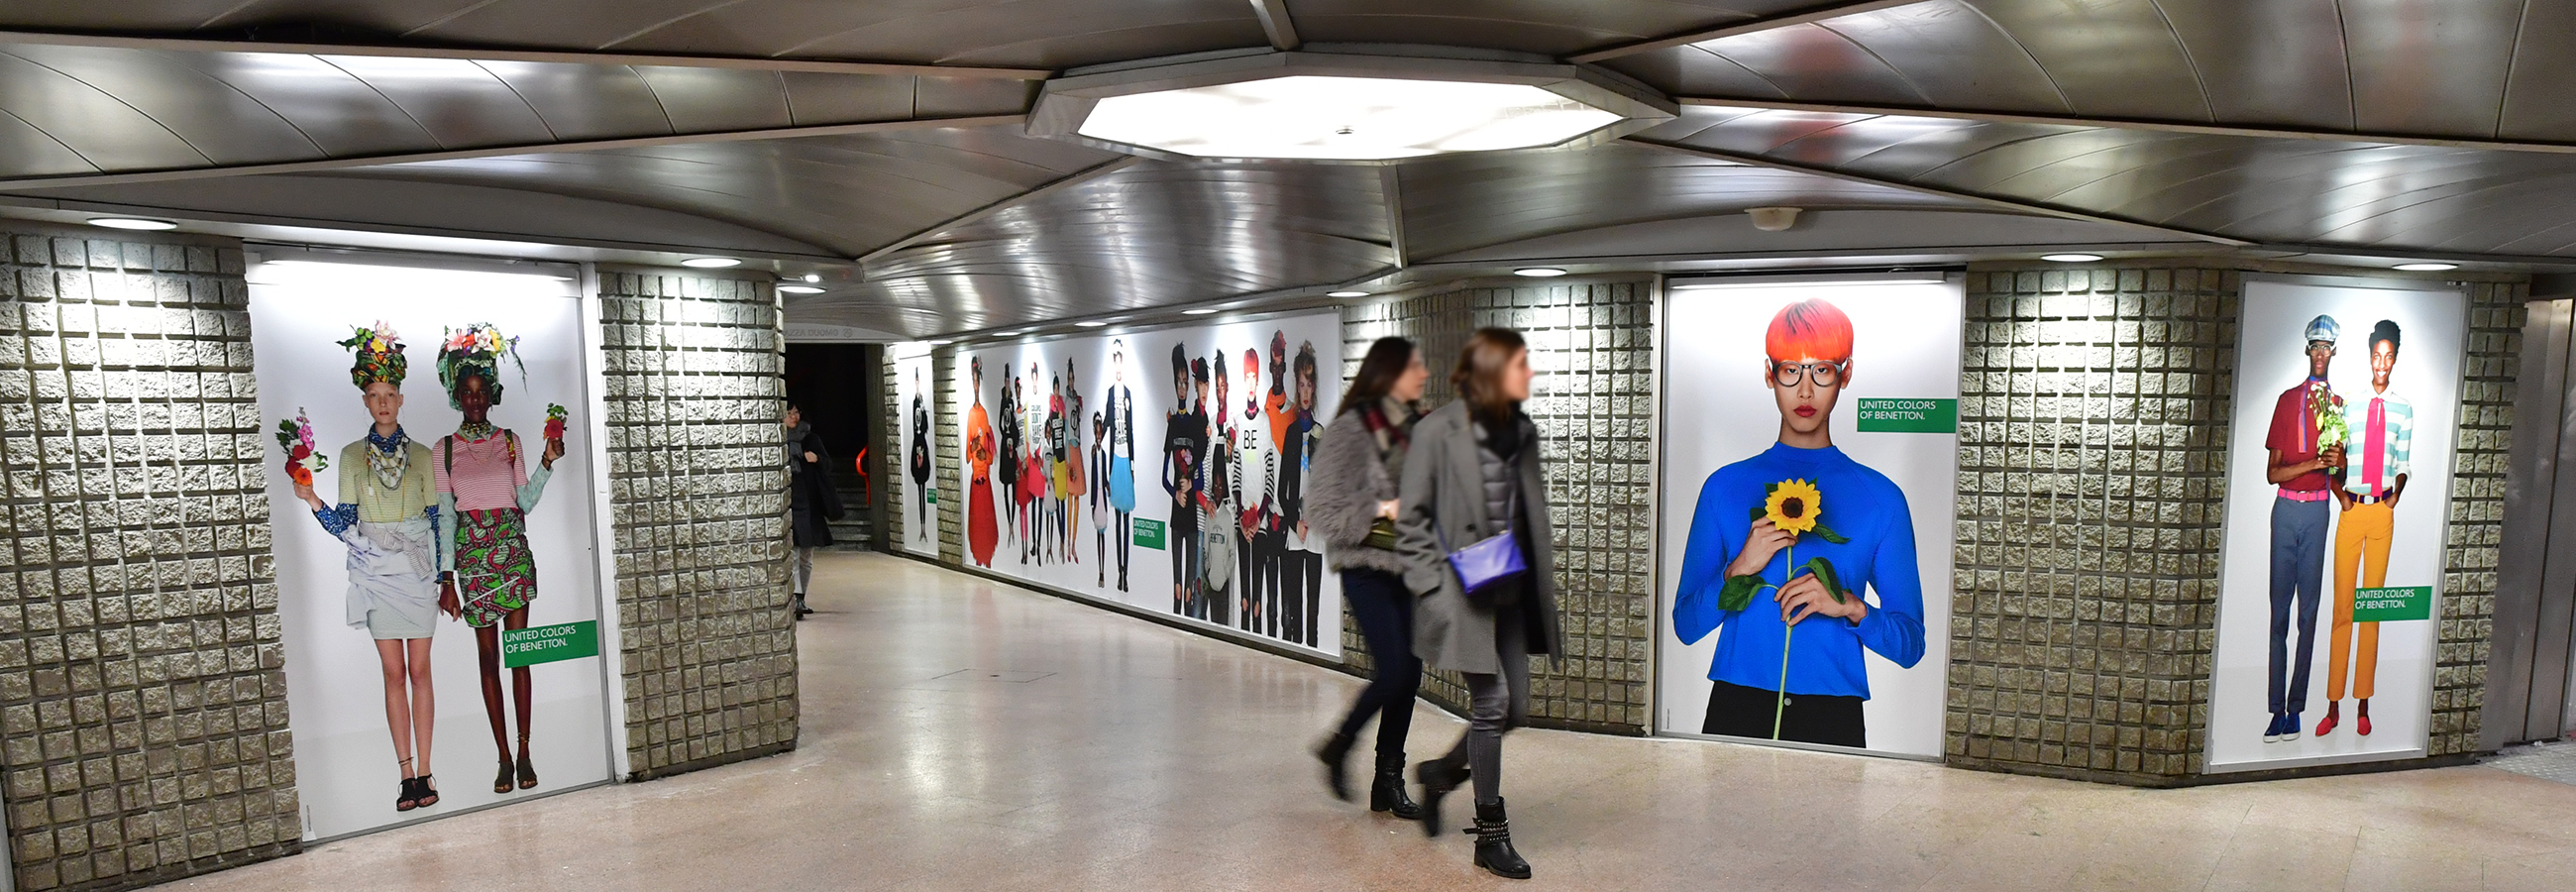 UNITED COLORS OF BENETTON station domination